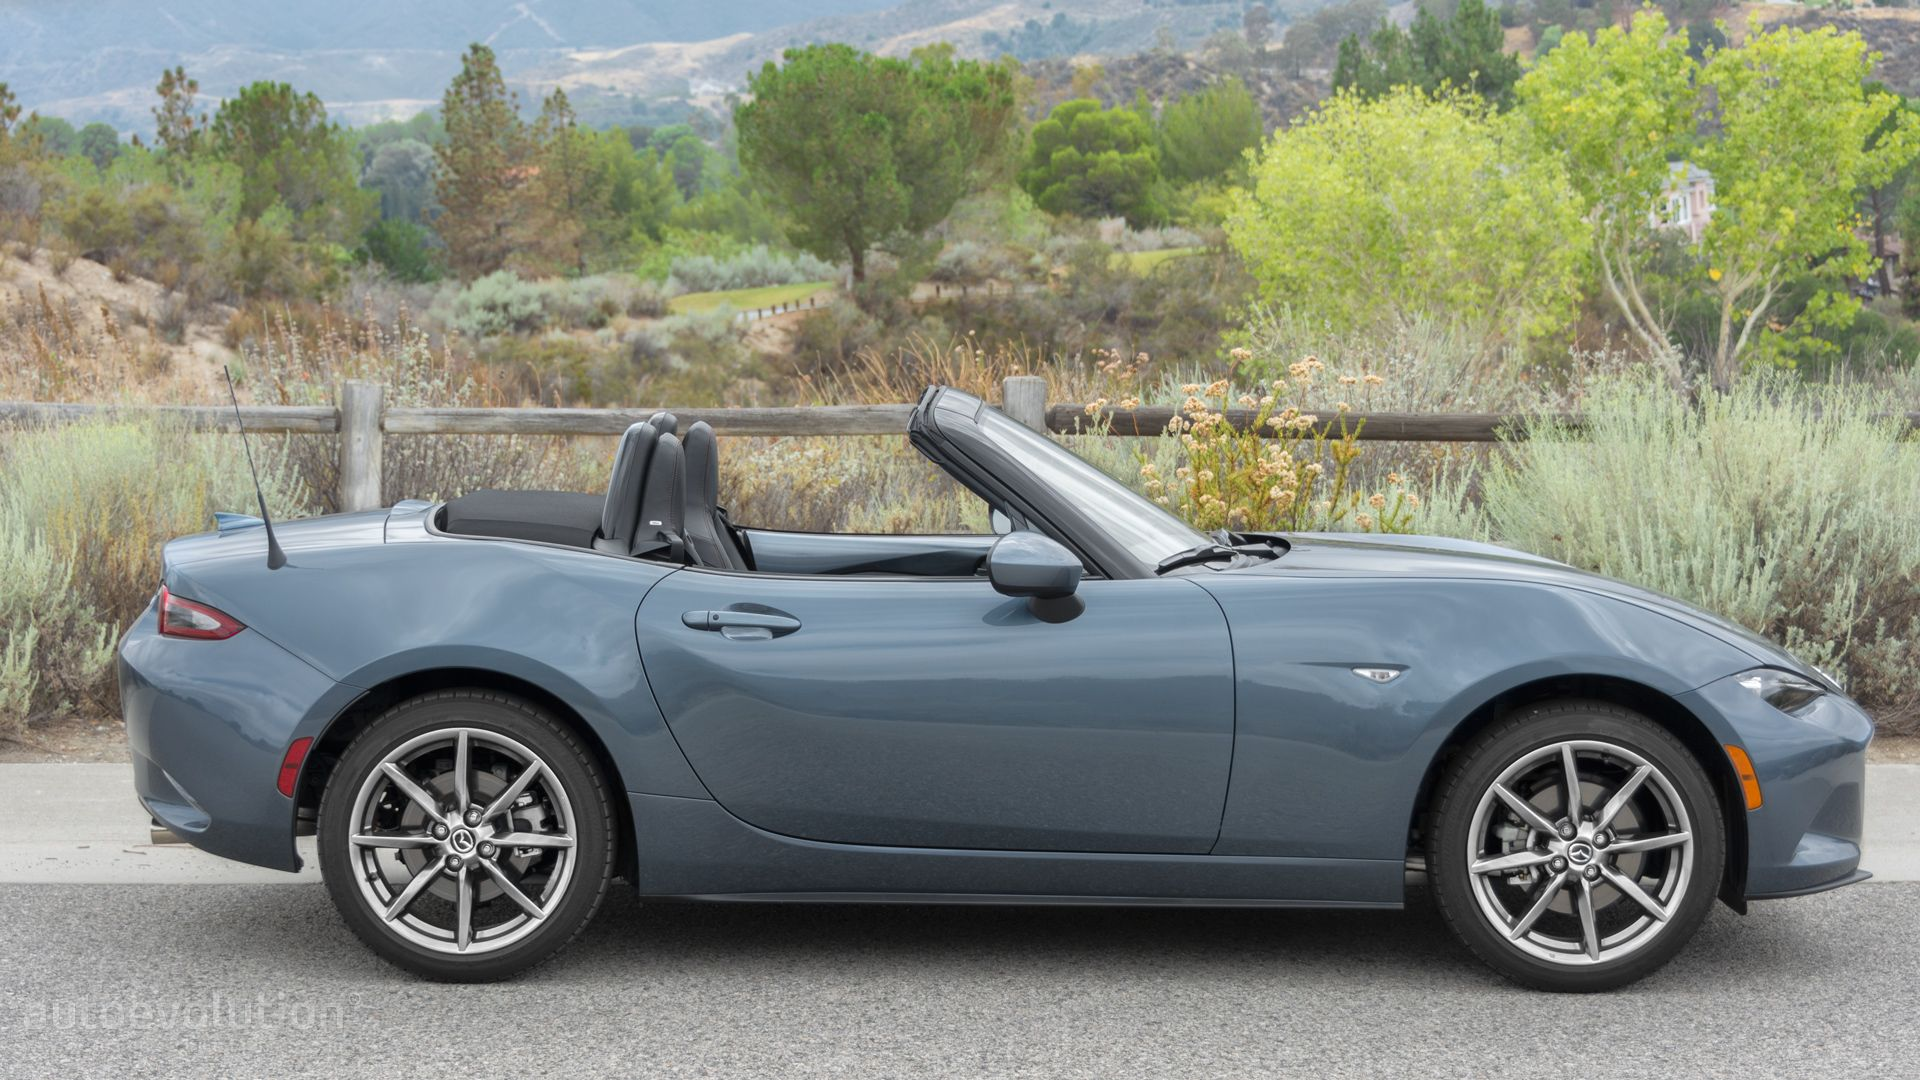 2016 Mazda MX 5 Miata HD Wallpapers Keyword